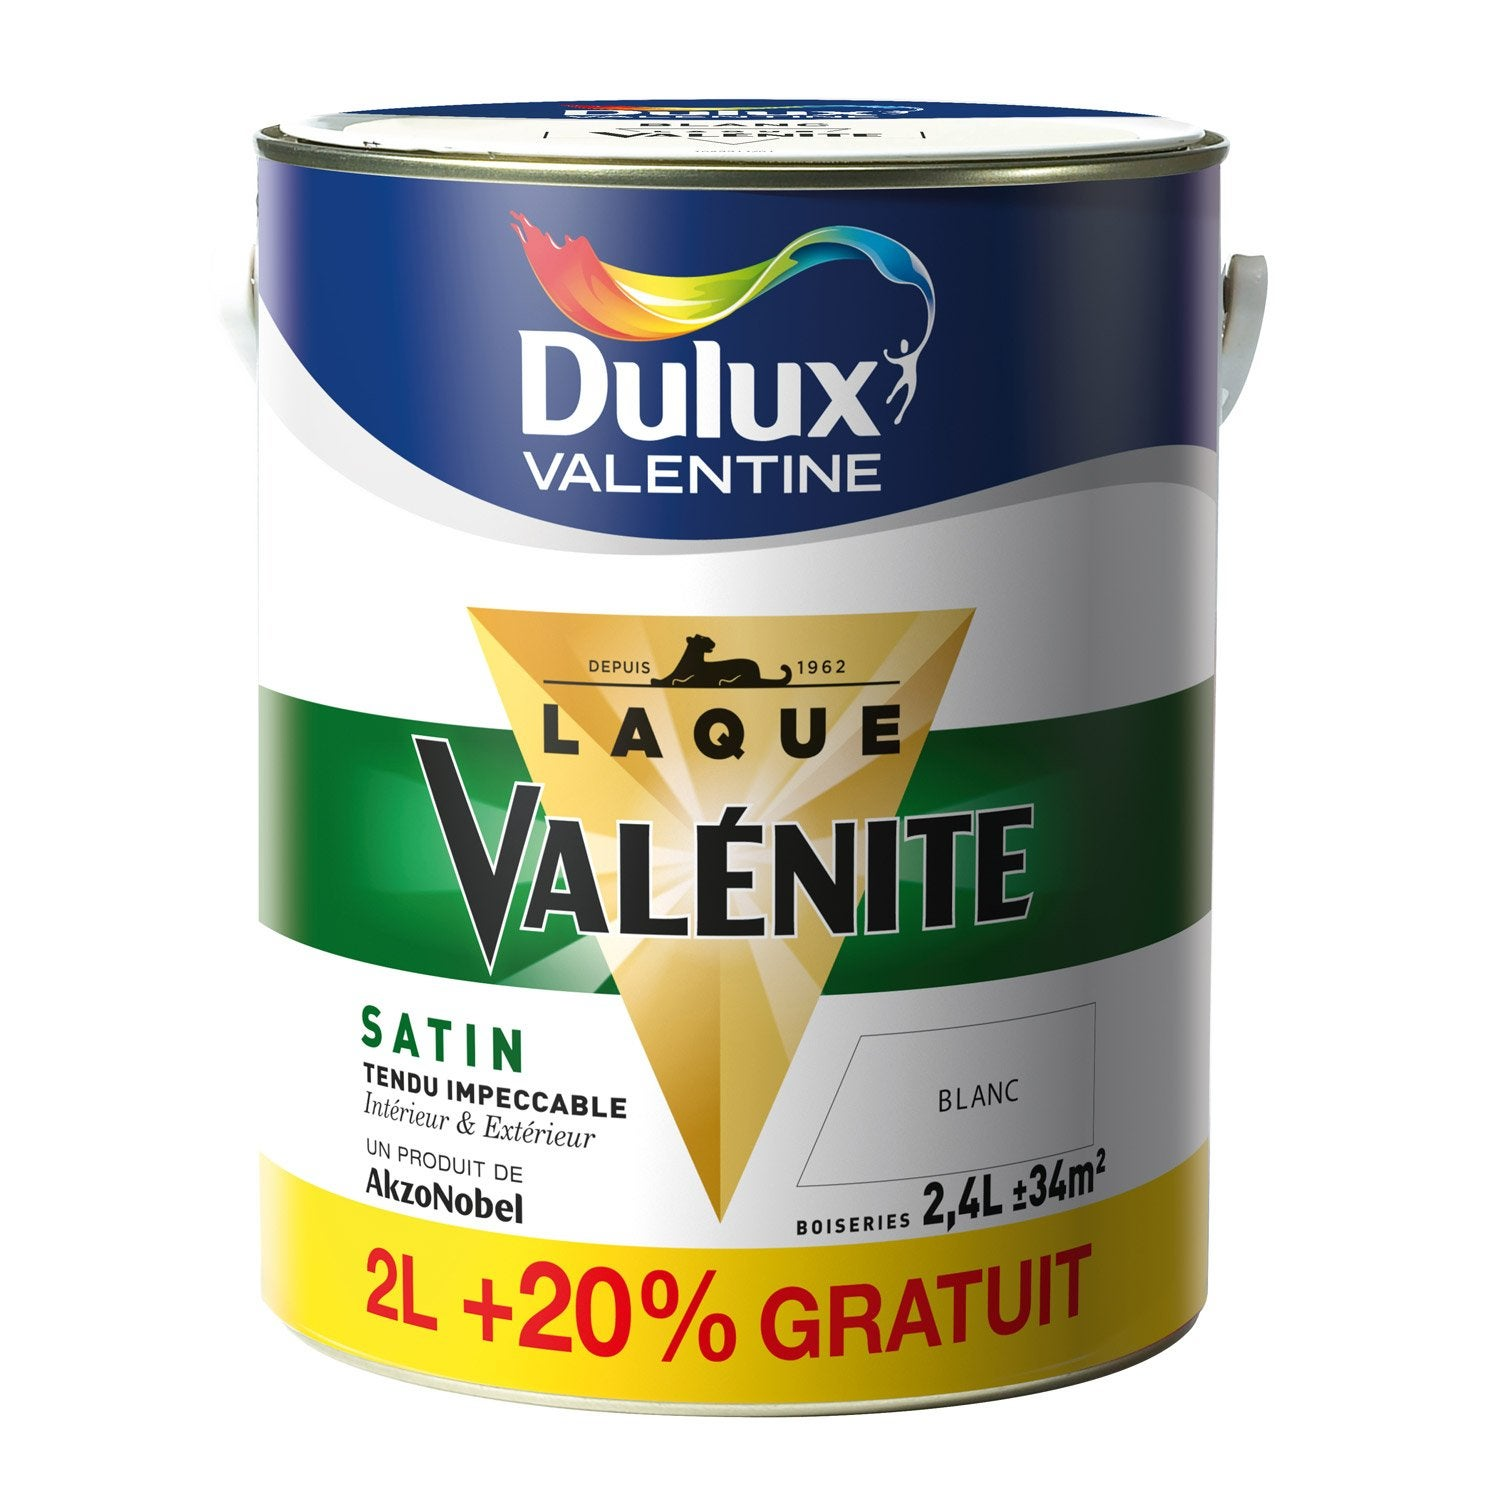 peinture val nite dulux valentine blanc 2 l 20 gratuit leroy merlin. Black Bedroom Furniture Sets. Home Design Ideas